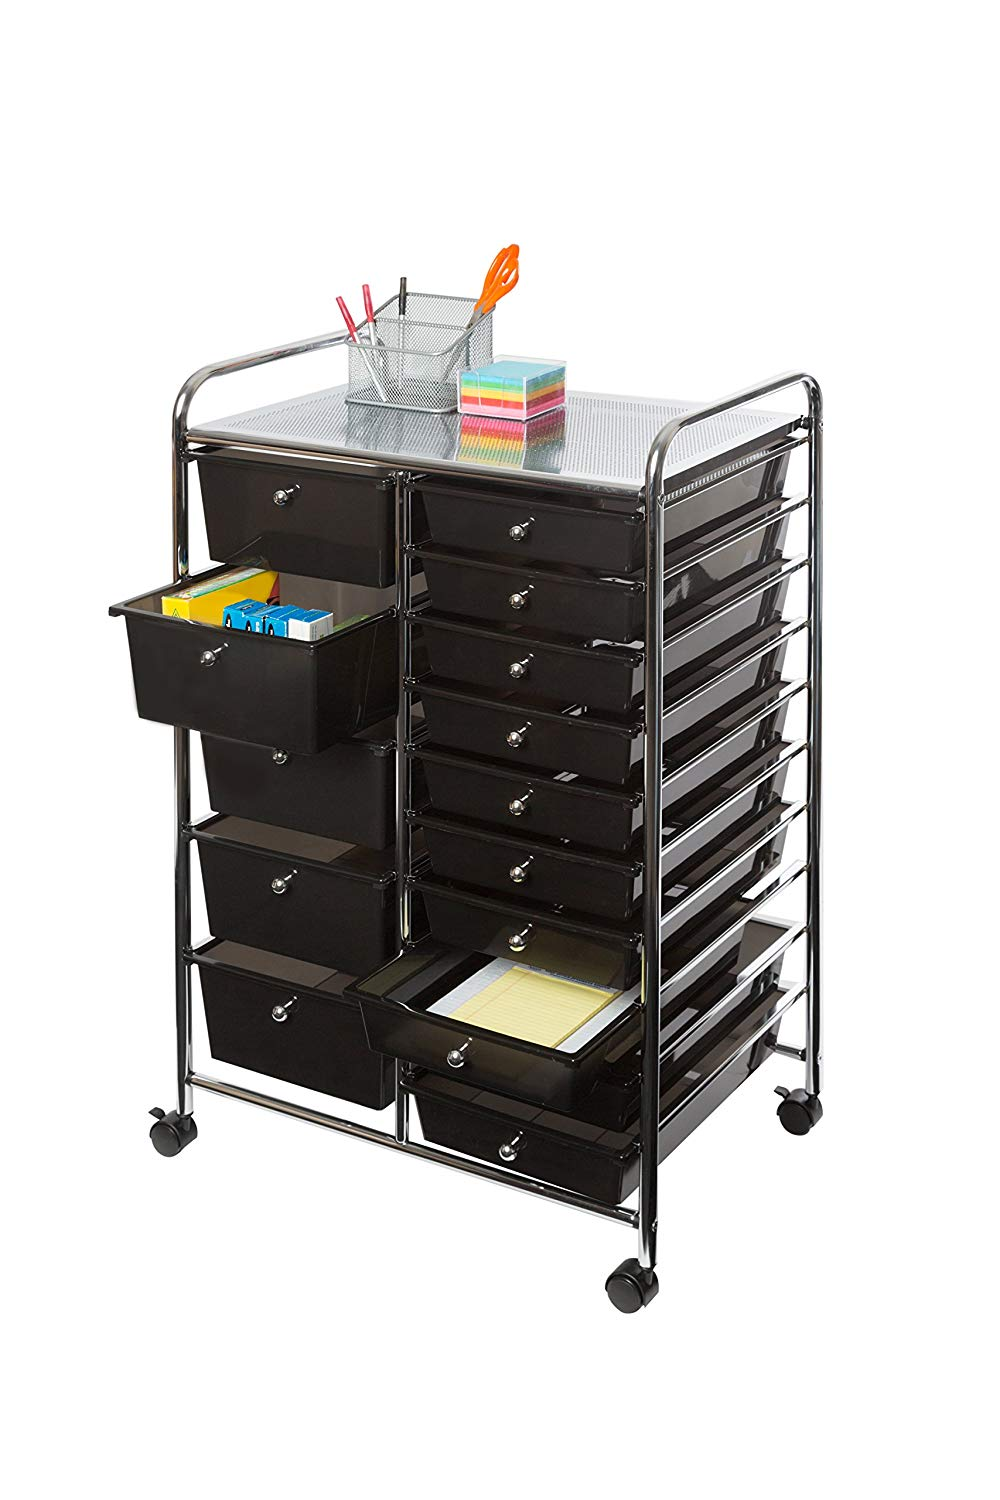 15-Drawer Organizer Cart